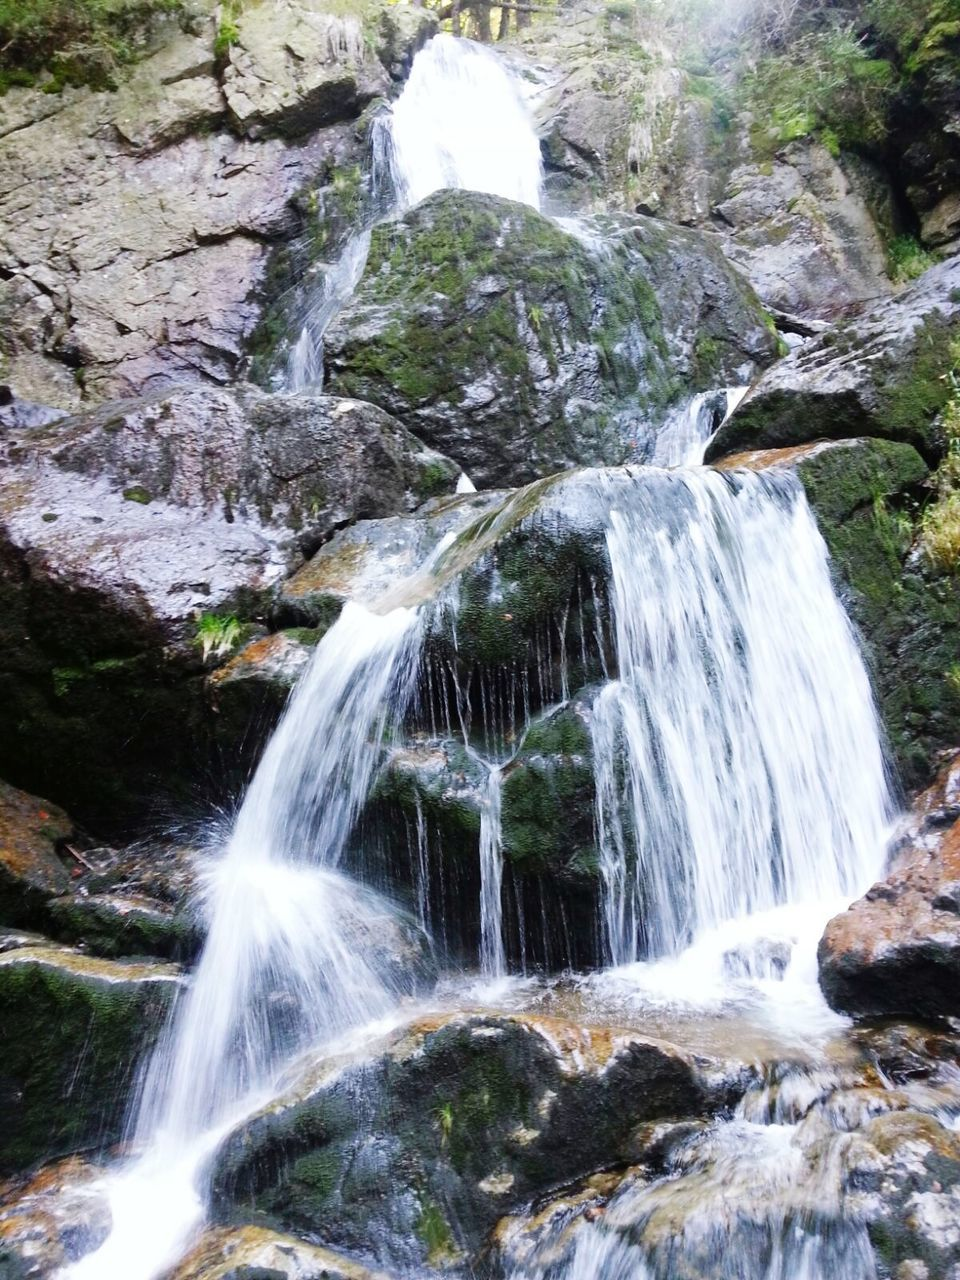 waterfall, water, motion, flowing water, long exposure, beauty in nature, rock - object, nature, blurred motion, scenics, no people, outdoors, day, forest, power in nature, freshness